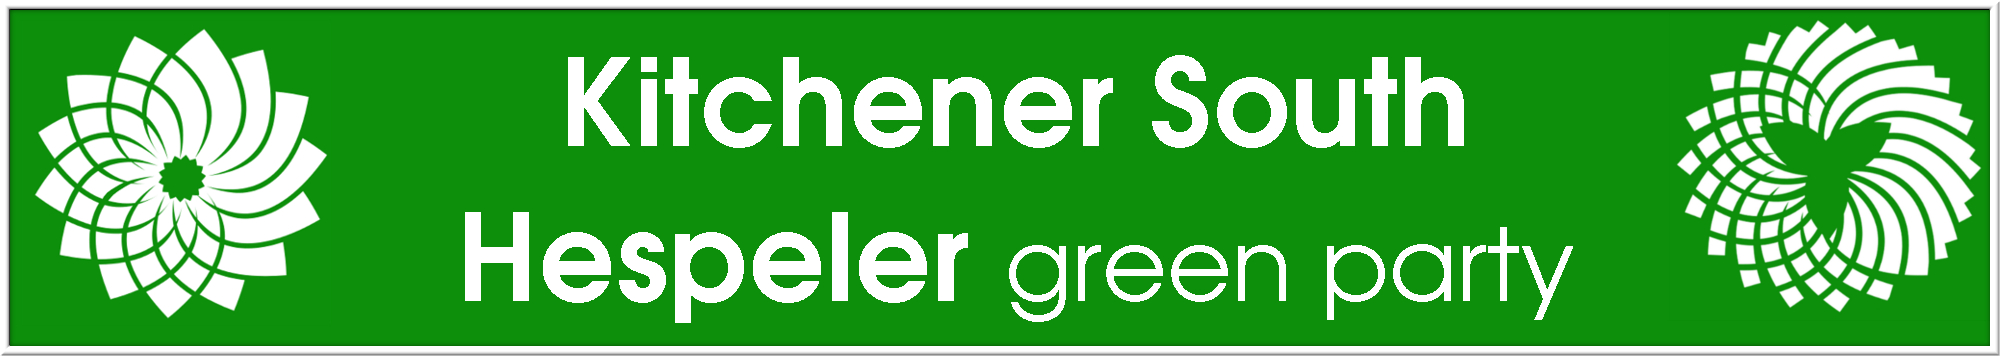 KitchenerSouth-HespelerGreenParty